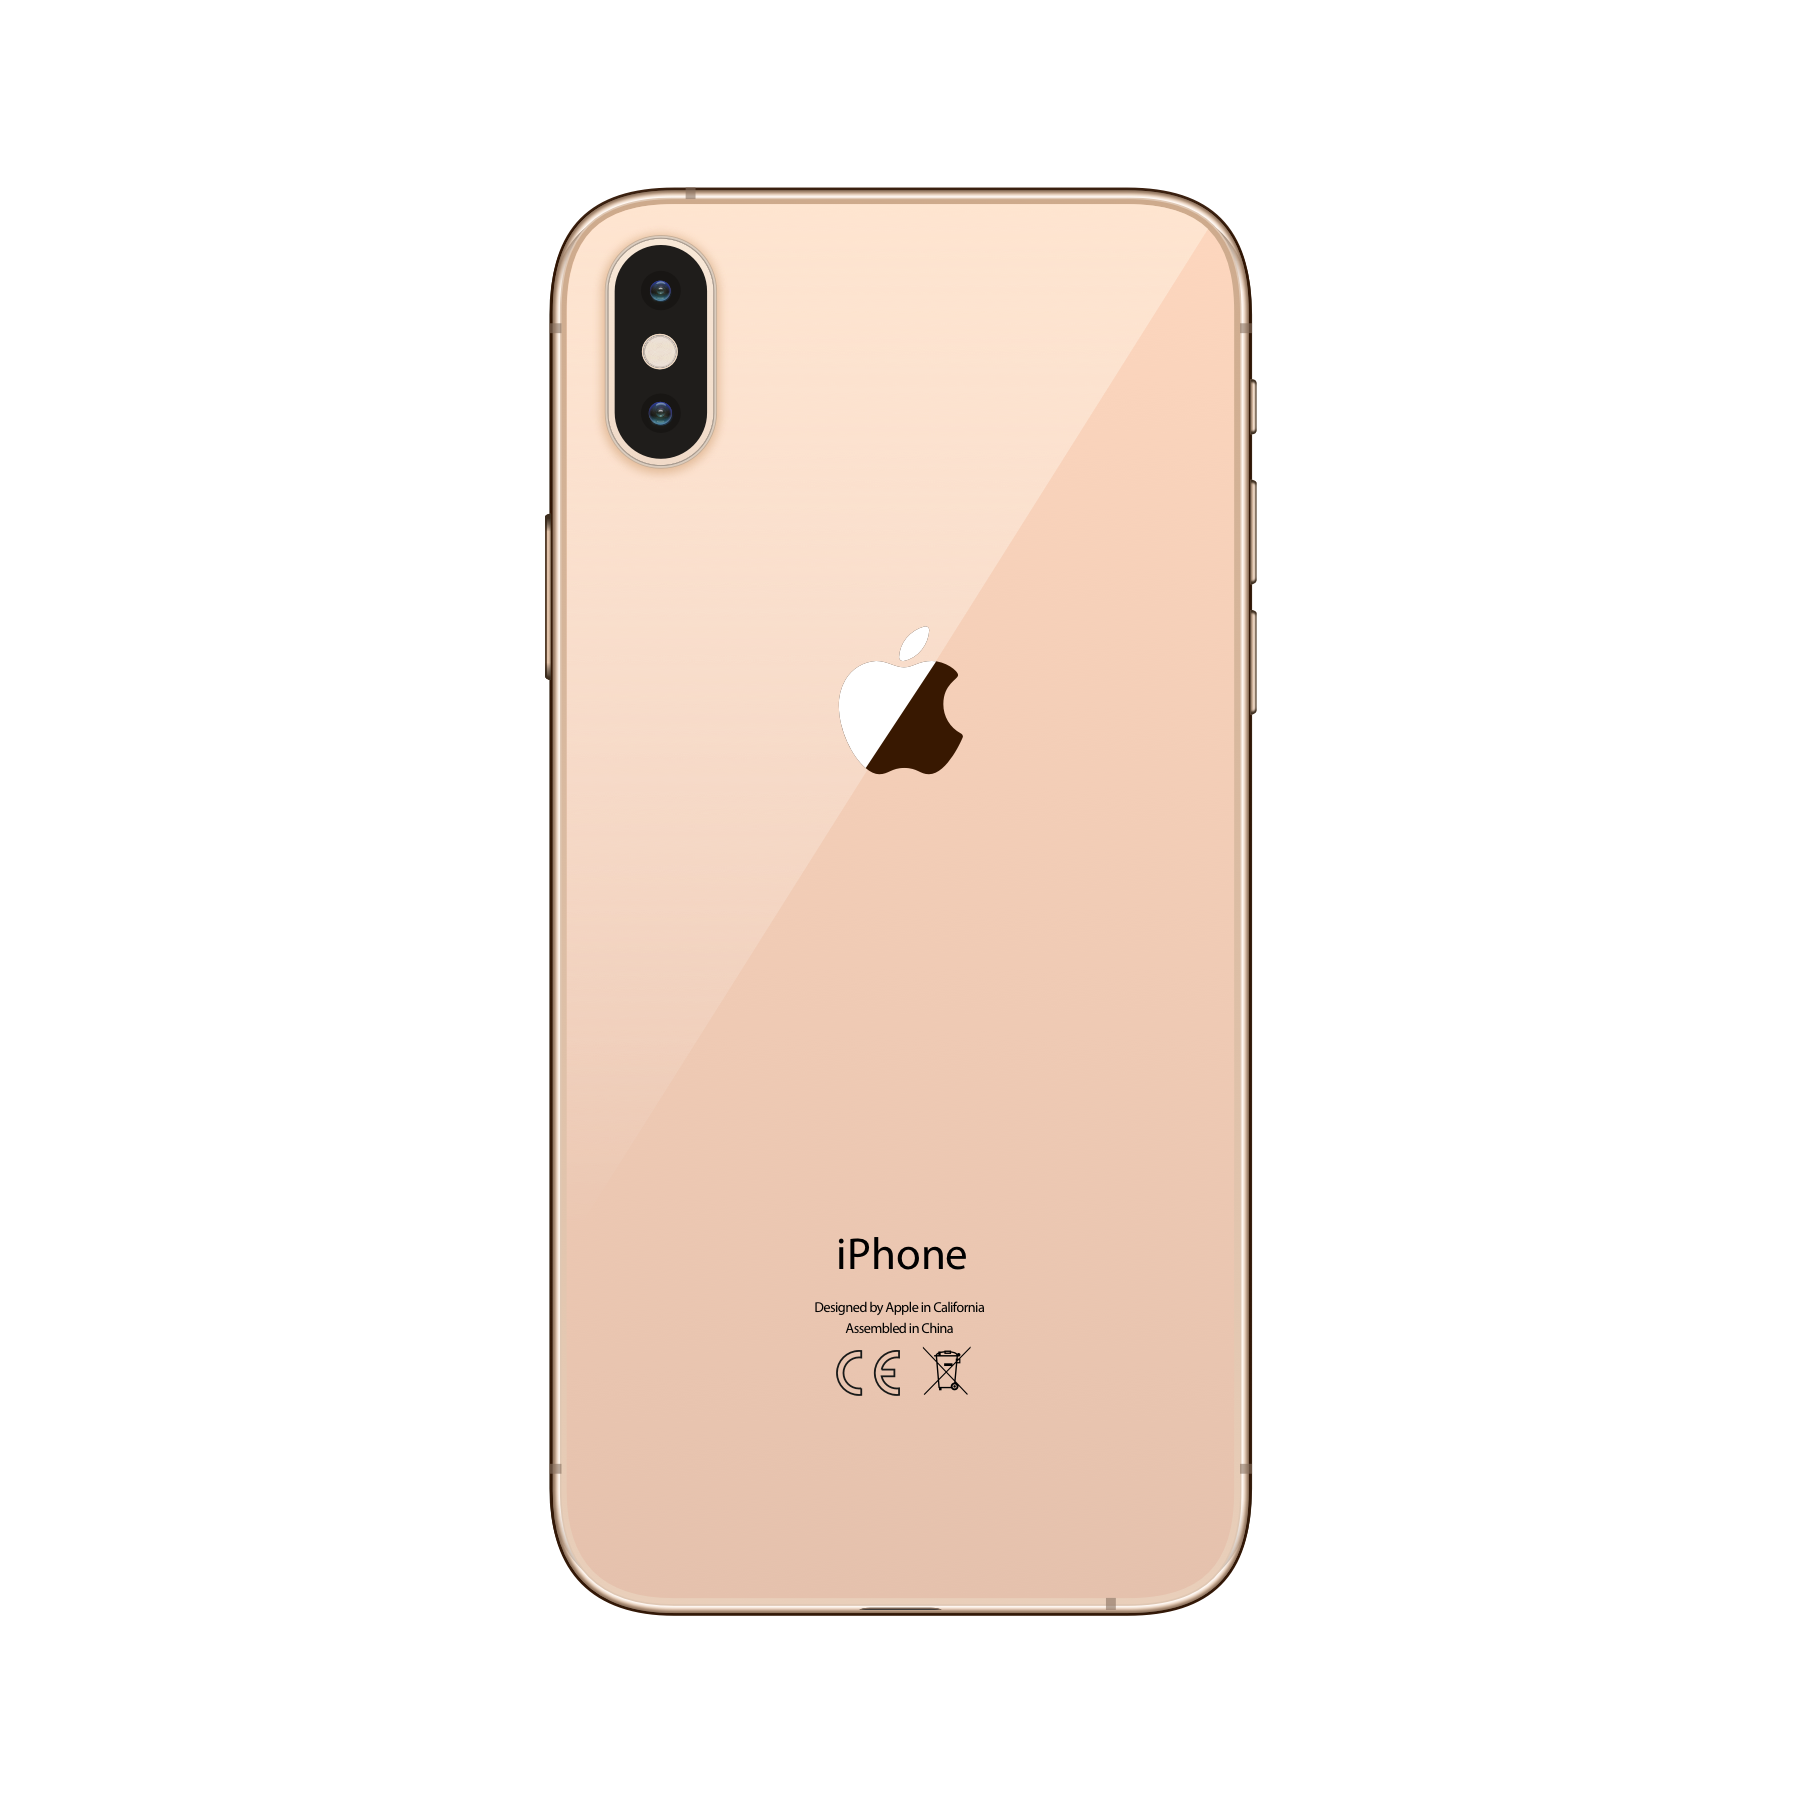 iPhone XS 256GB Gold - Back image